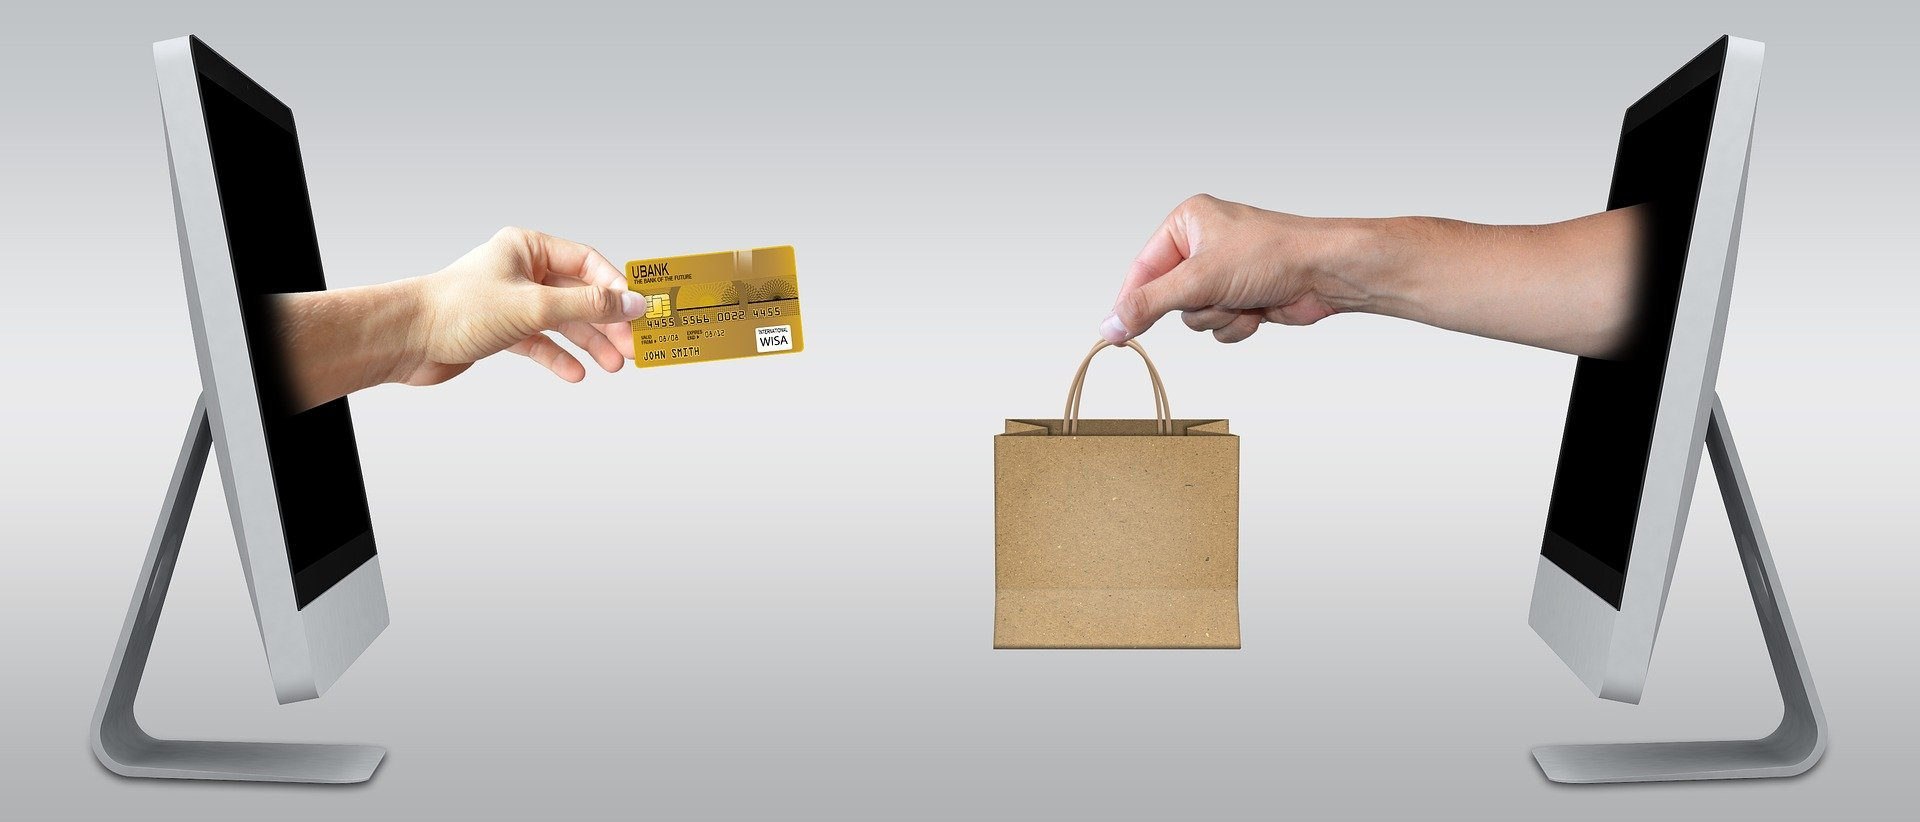 A/B Testing Ideas For Ecommerce Stores